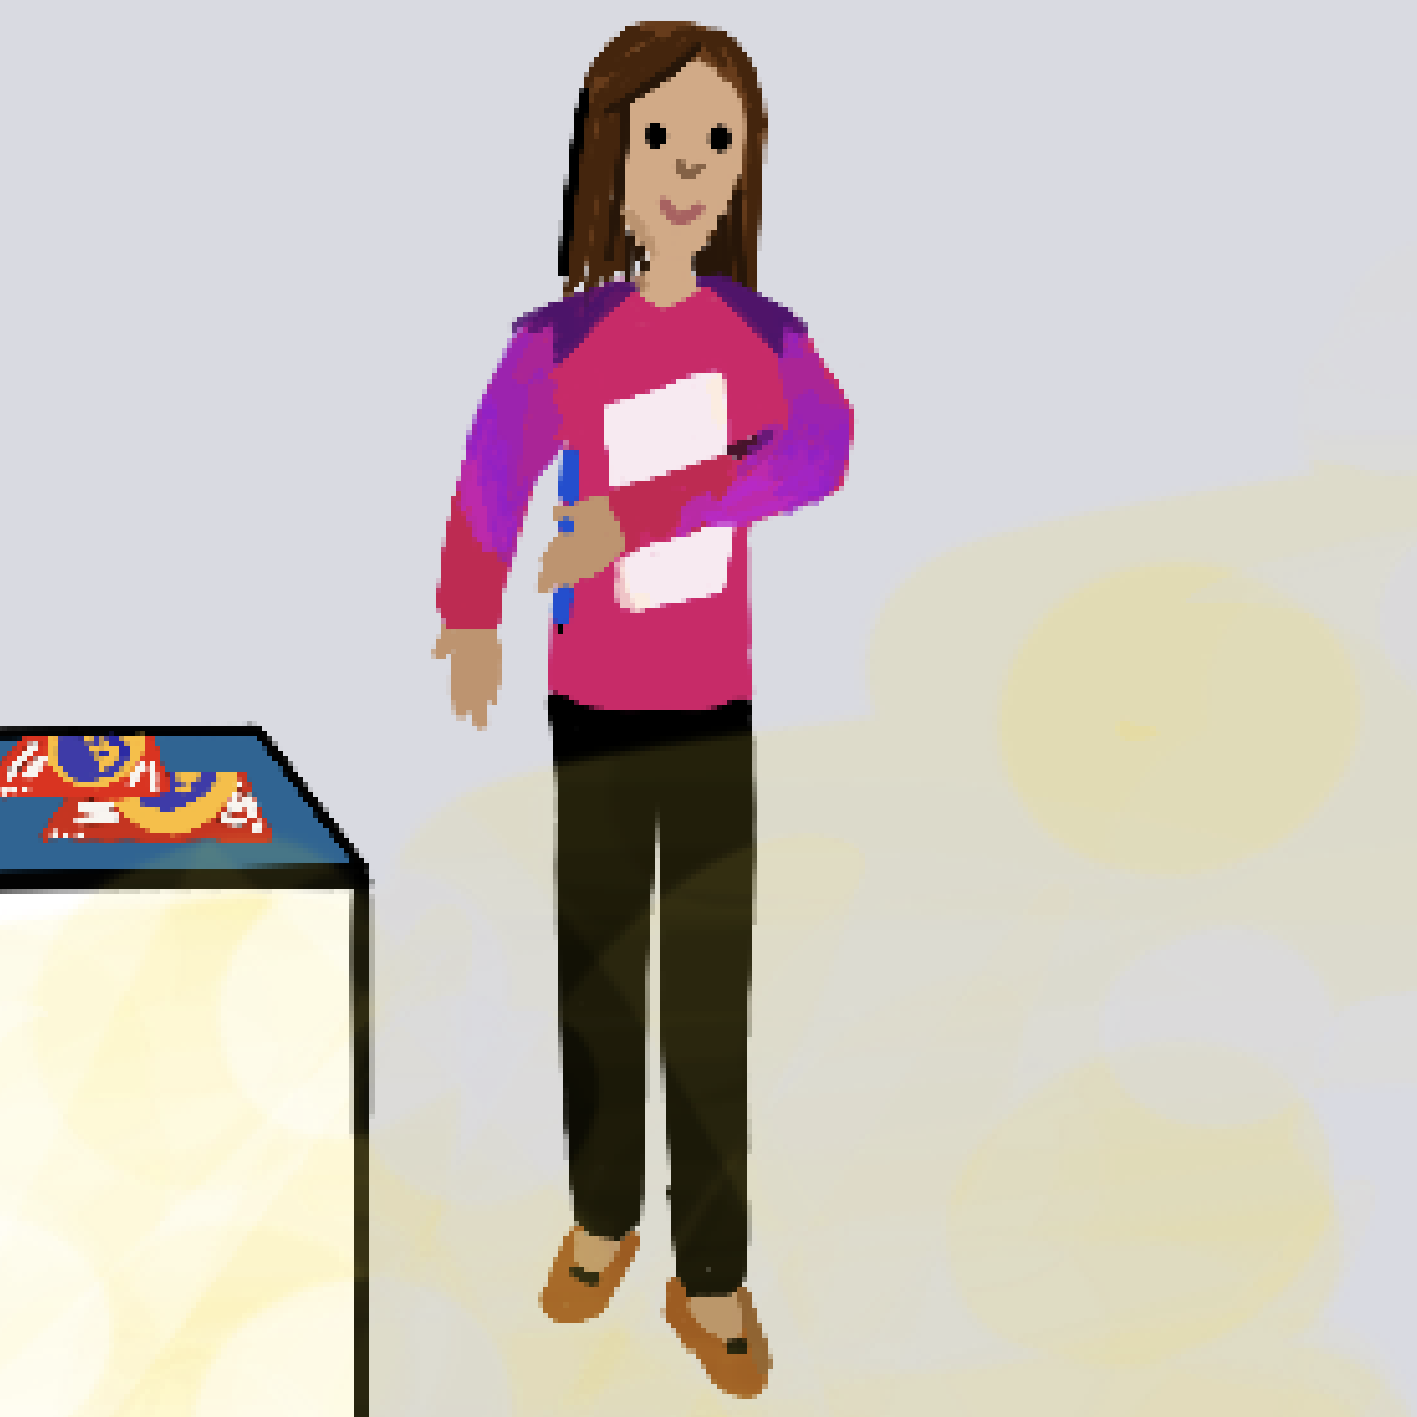 A drawing showing BJ, producer at BRIC holding a pad of paper and wearing a bright pink sweater.